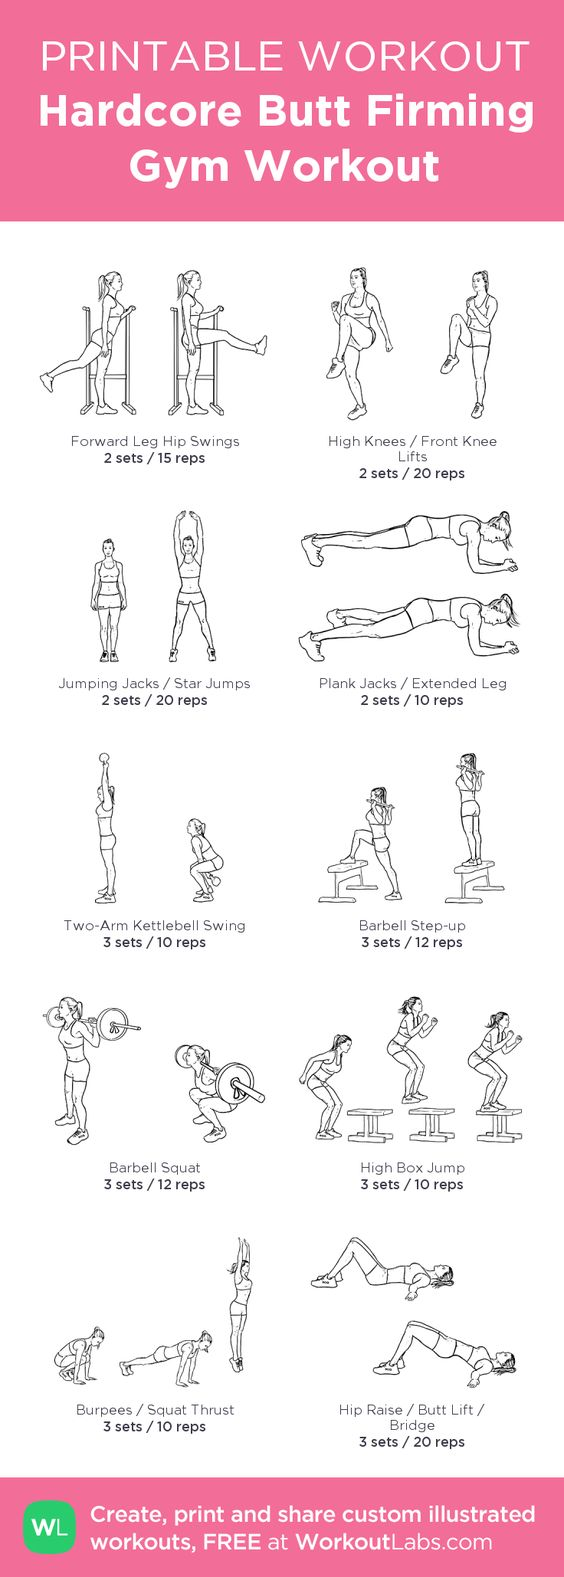 Hardcore Butt Firming Gym Illustrated Workout for Women • Click to customize and download a FREE PDF! #customworkout